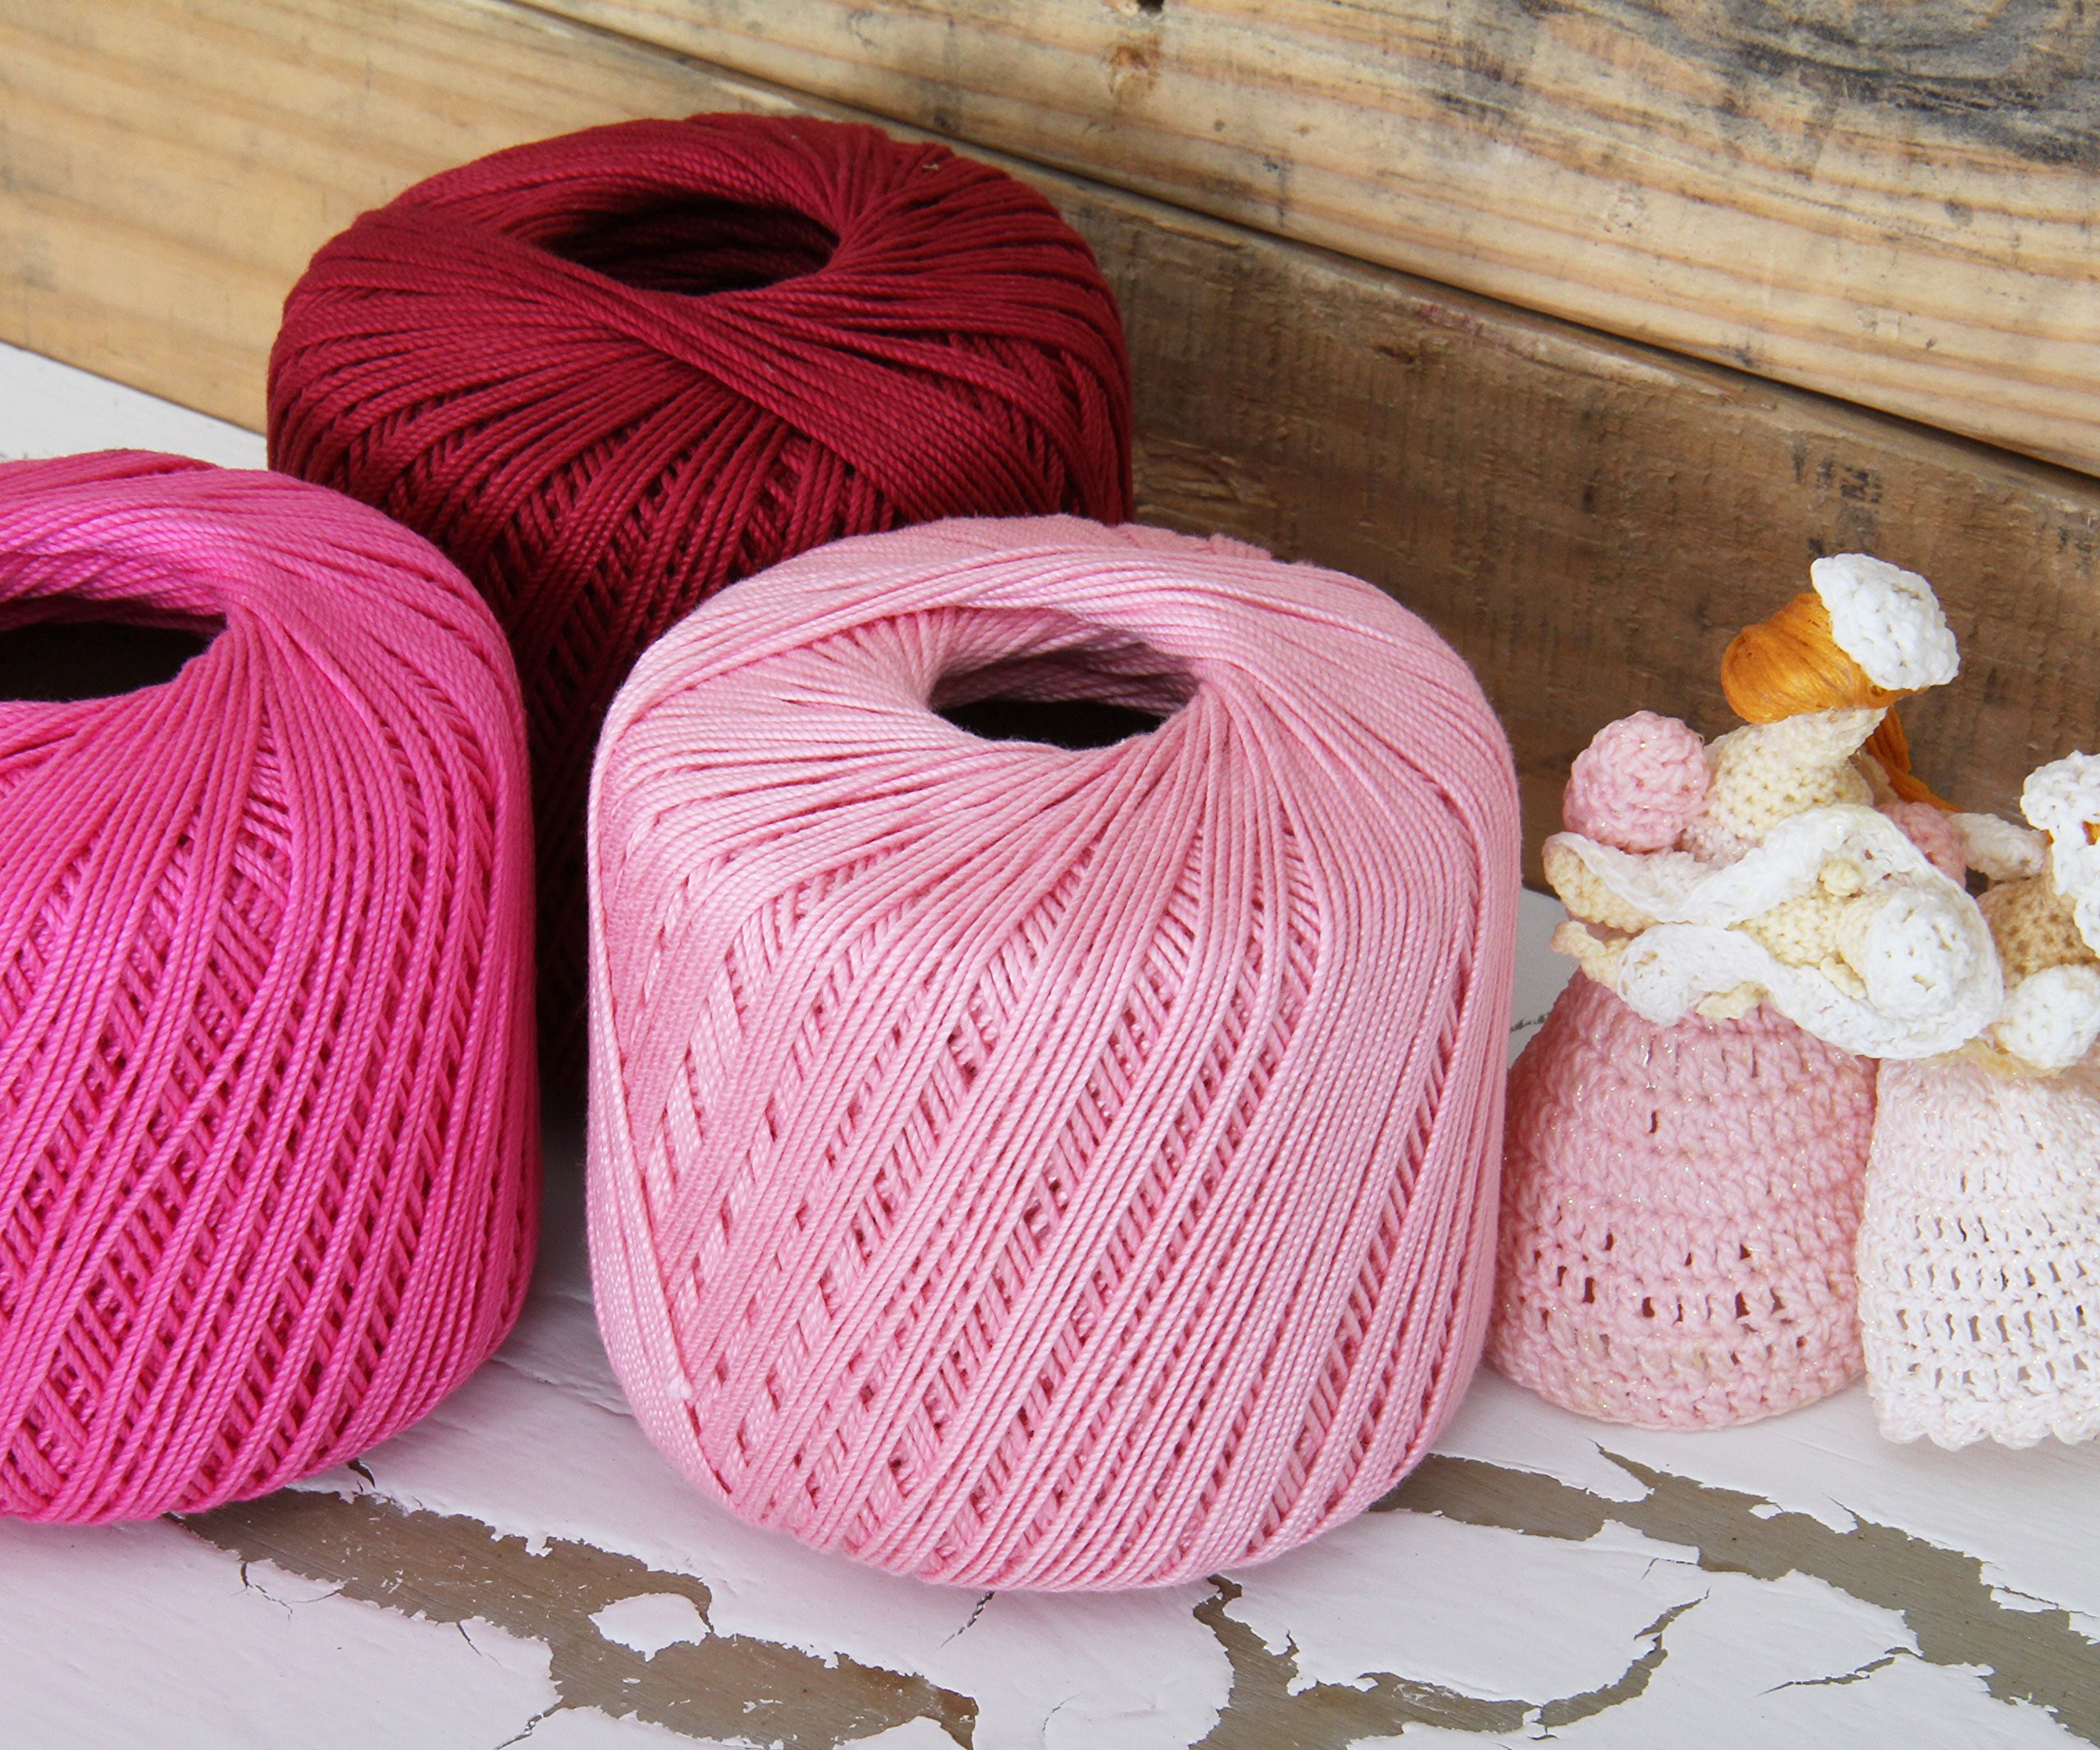 Crochet Thread Size 30 Luxury Galleon Crochet Thread Size 3 Color 30 Purple 2 Of Awesome 45 Photos Crochet Thread Size 30